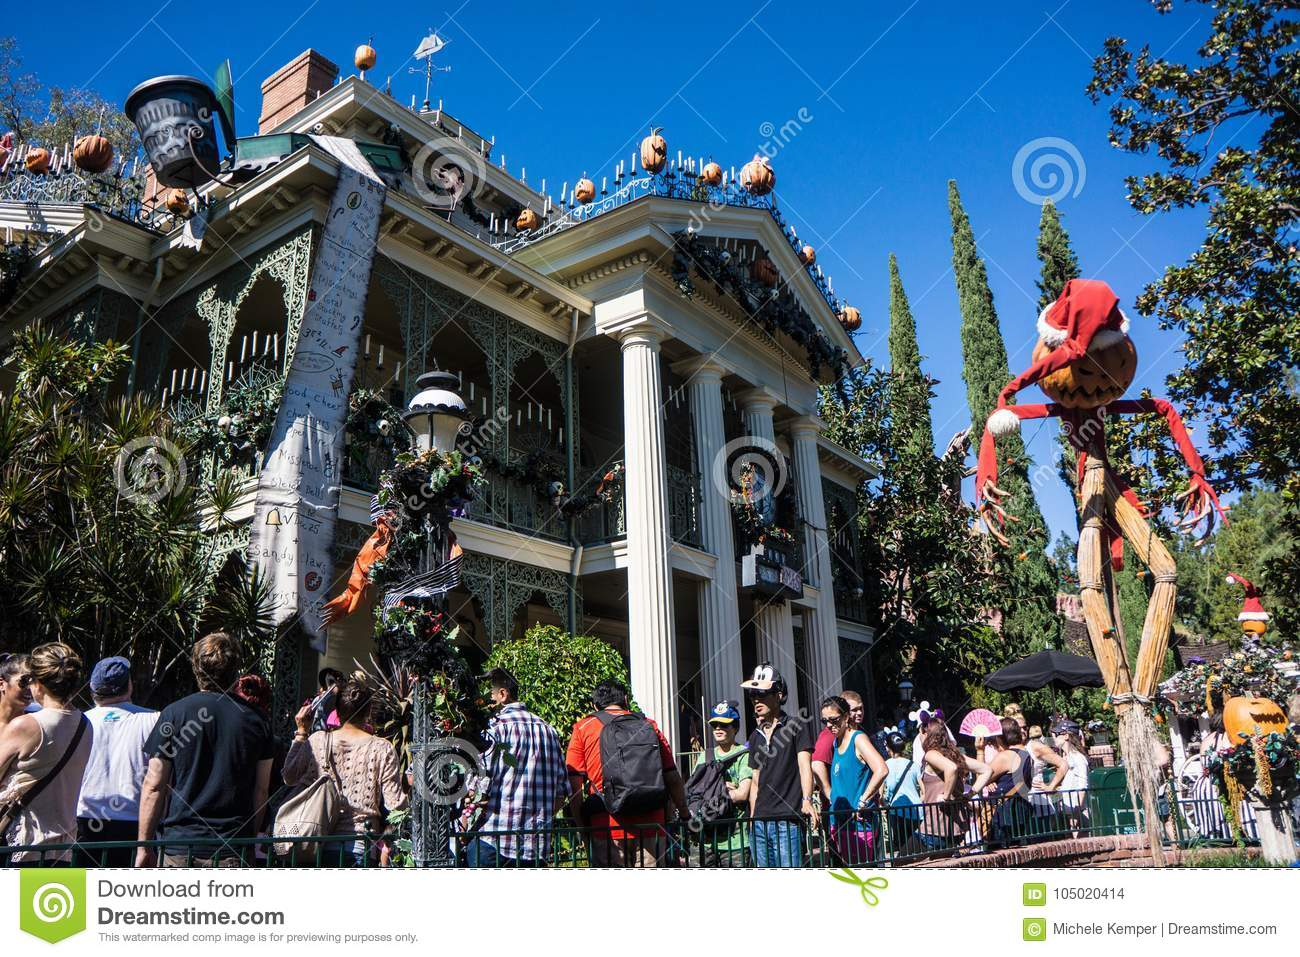 55 Disney Haunted Mansion s Free & Royalty Free Stock